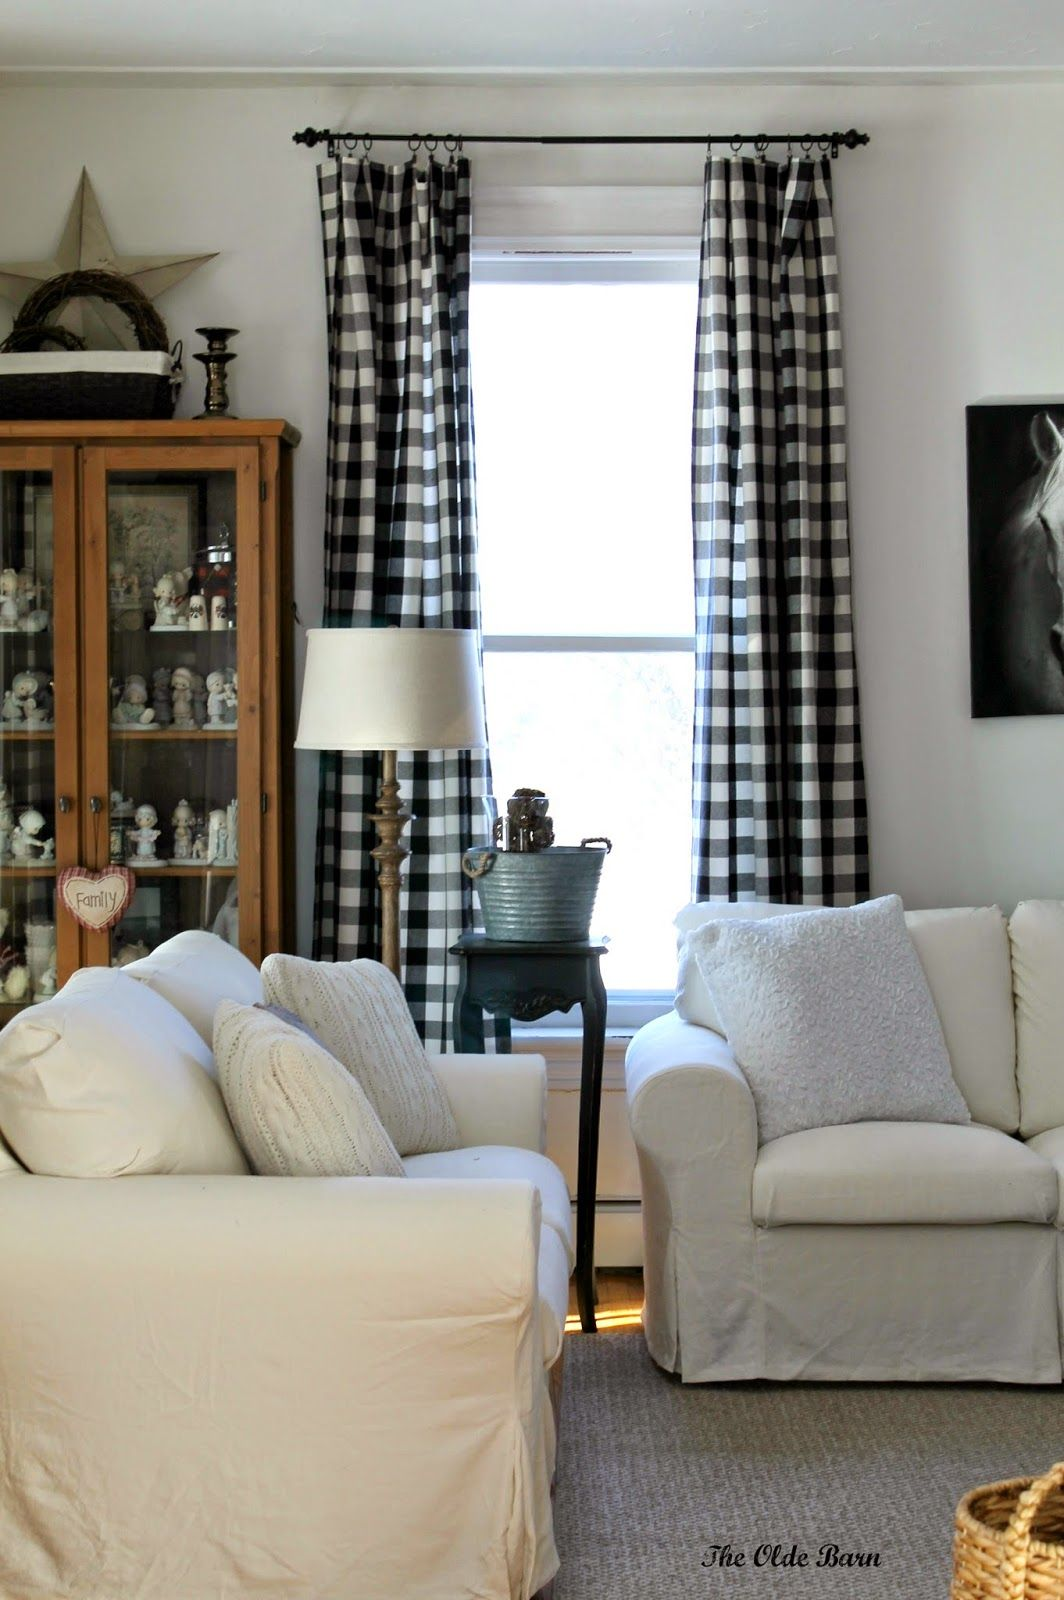 Vintage living room with black white buffalo check curtain panels and white slipcover sofa set